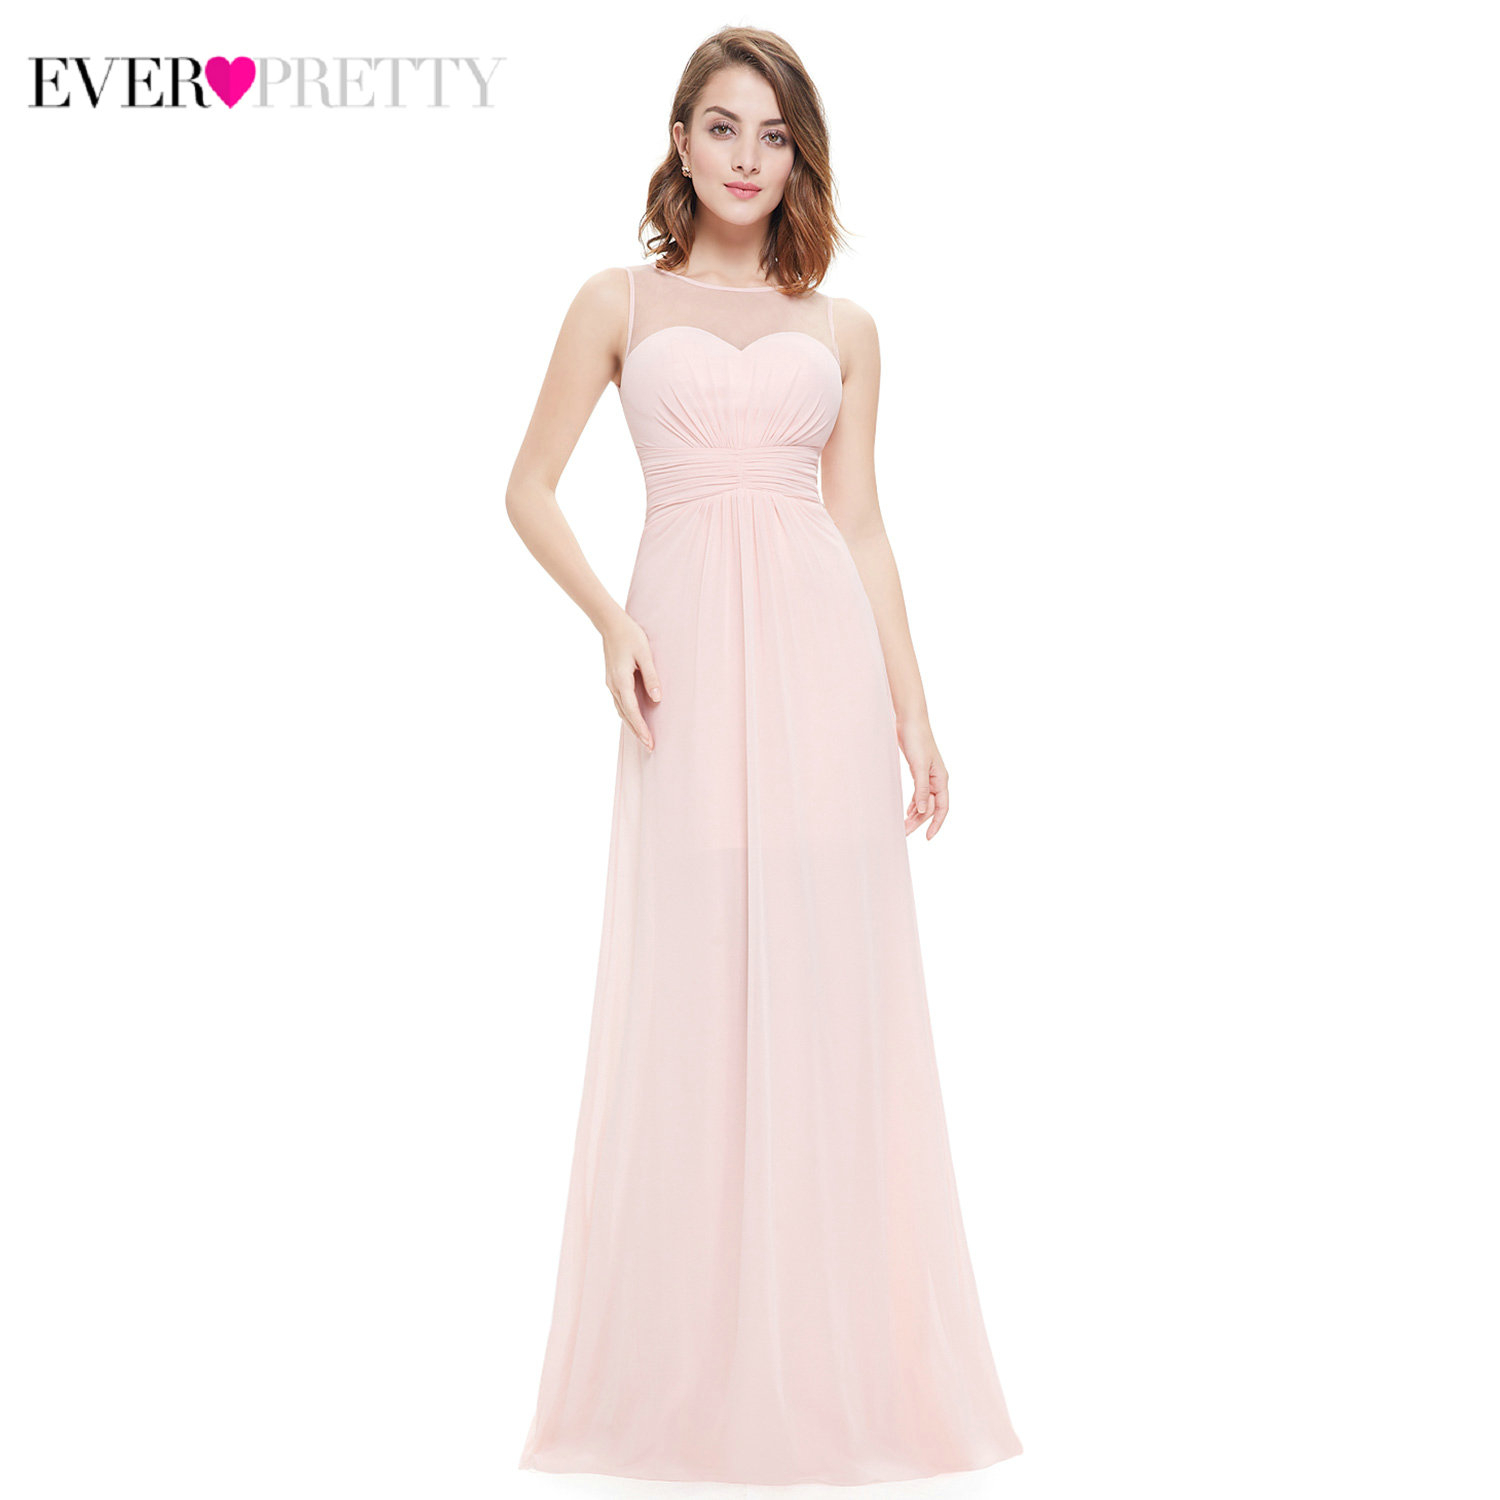 Elegant Bridesmaid Dresses Ever Pretty EP08761 A-Line O-Neck Sleeveless Ruched Chiffon Wedding Guest Dresses Vestido Madrinha